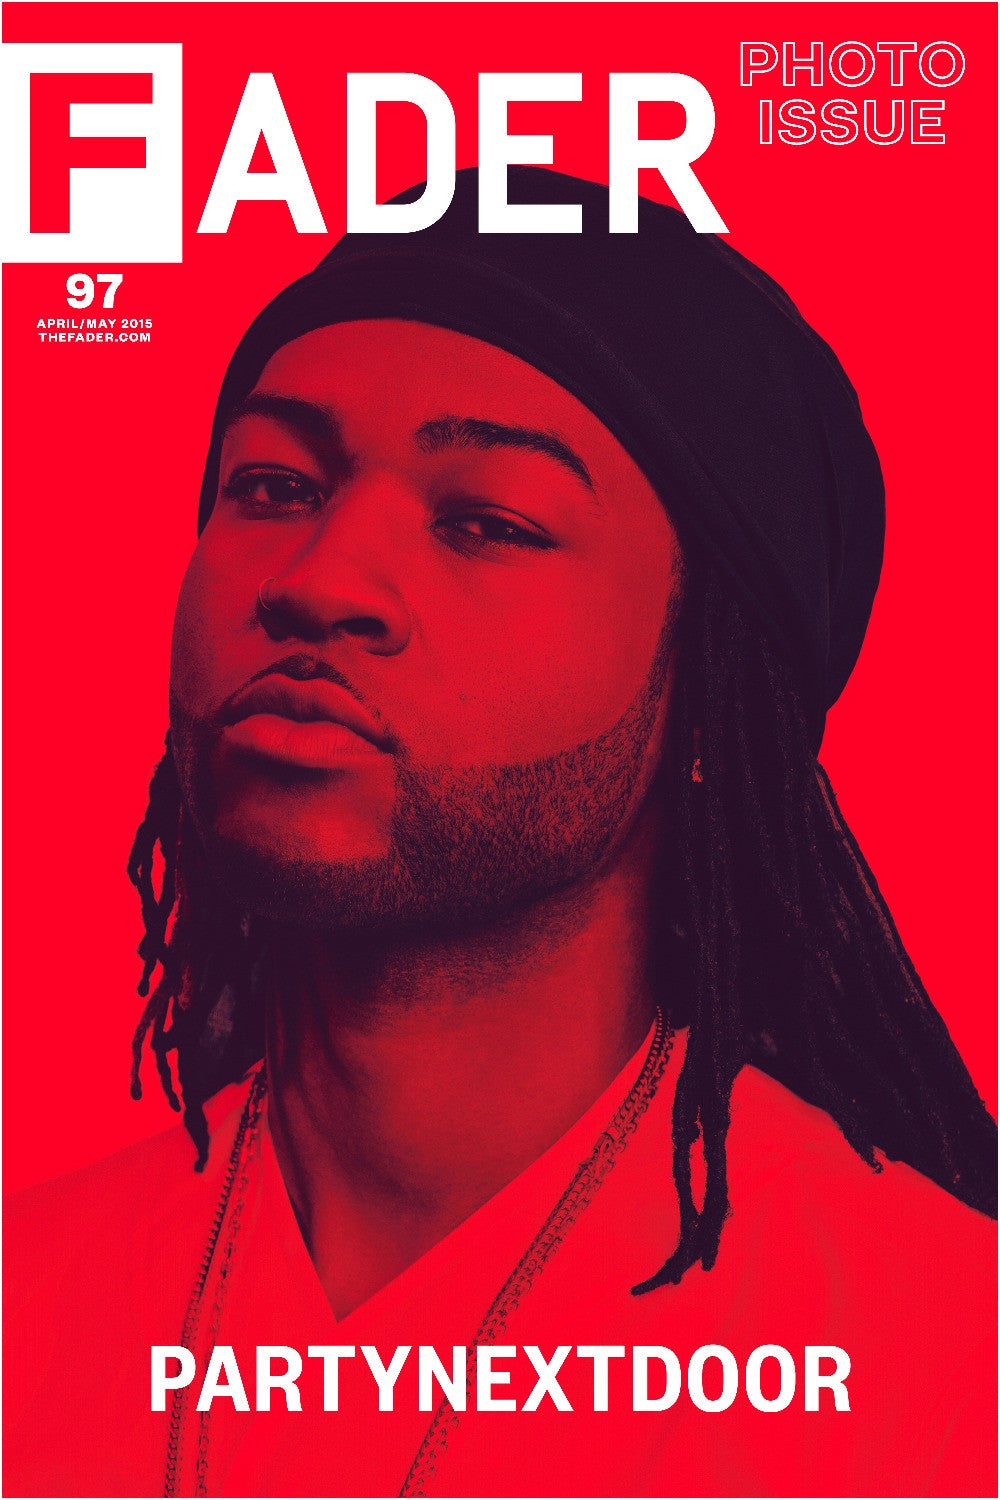 "PARTYNEXTDOOR / The FADER Issue 97 Cover 20"" x 30"" Poster - The FADER"